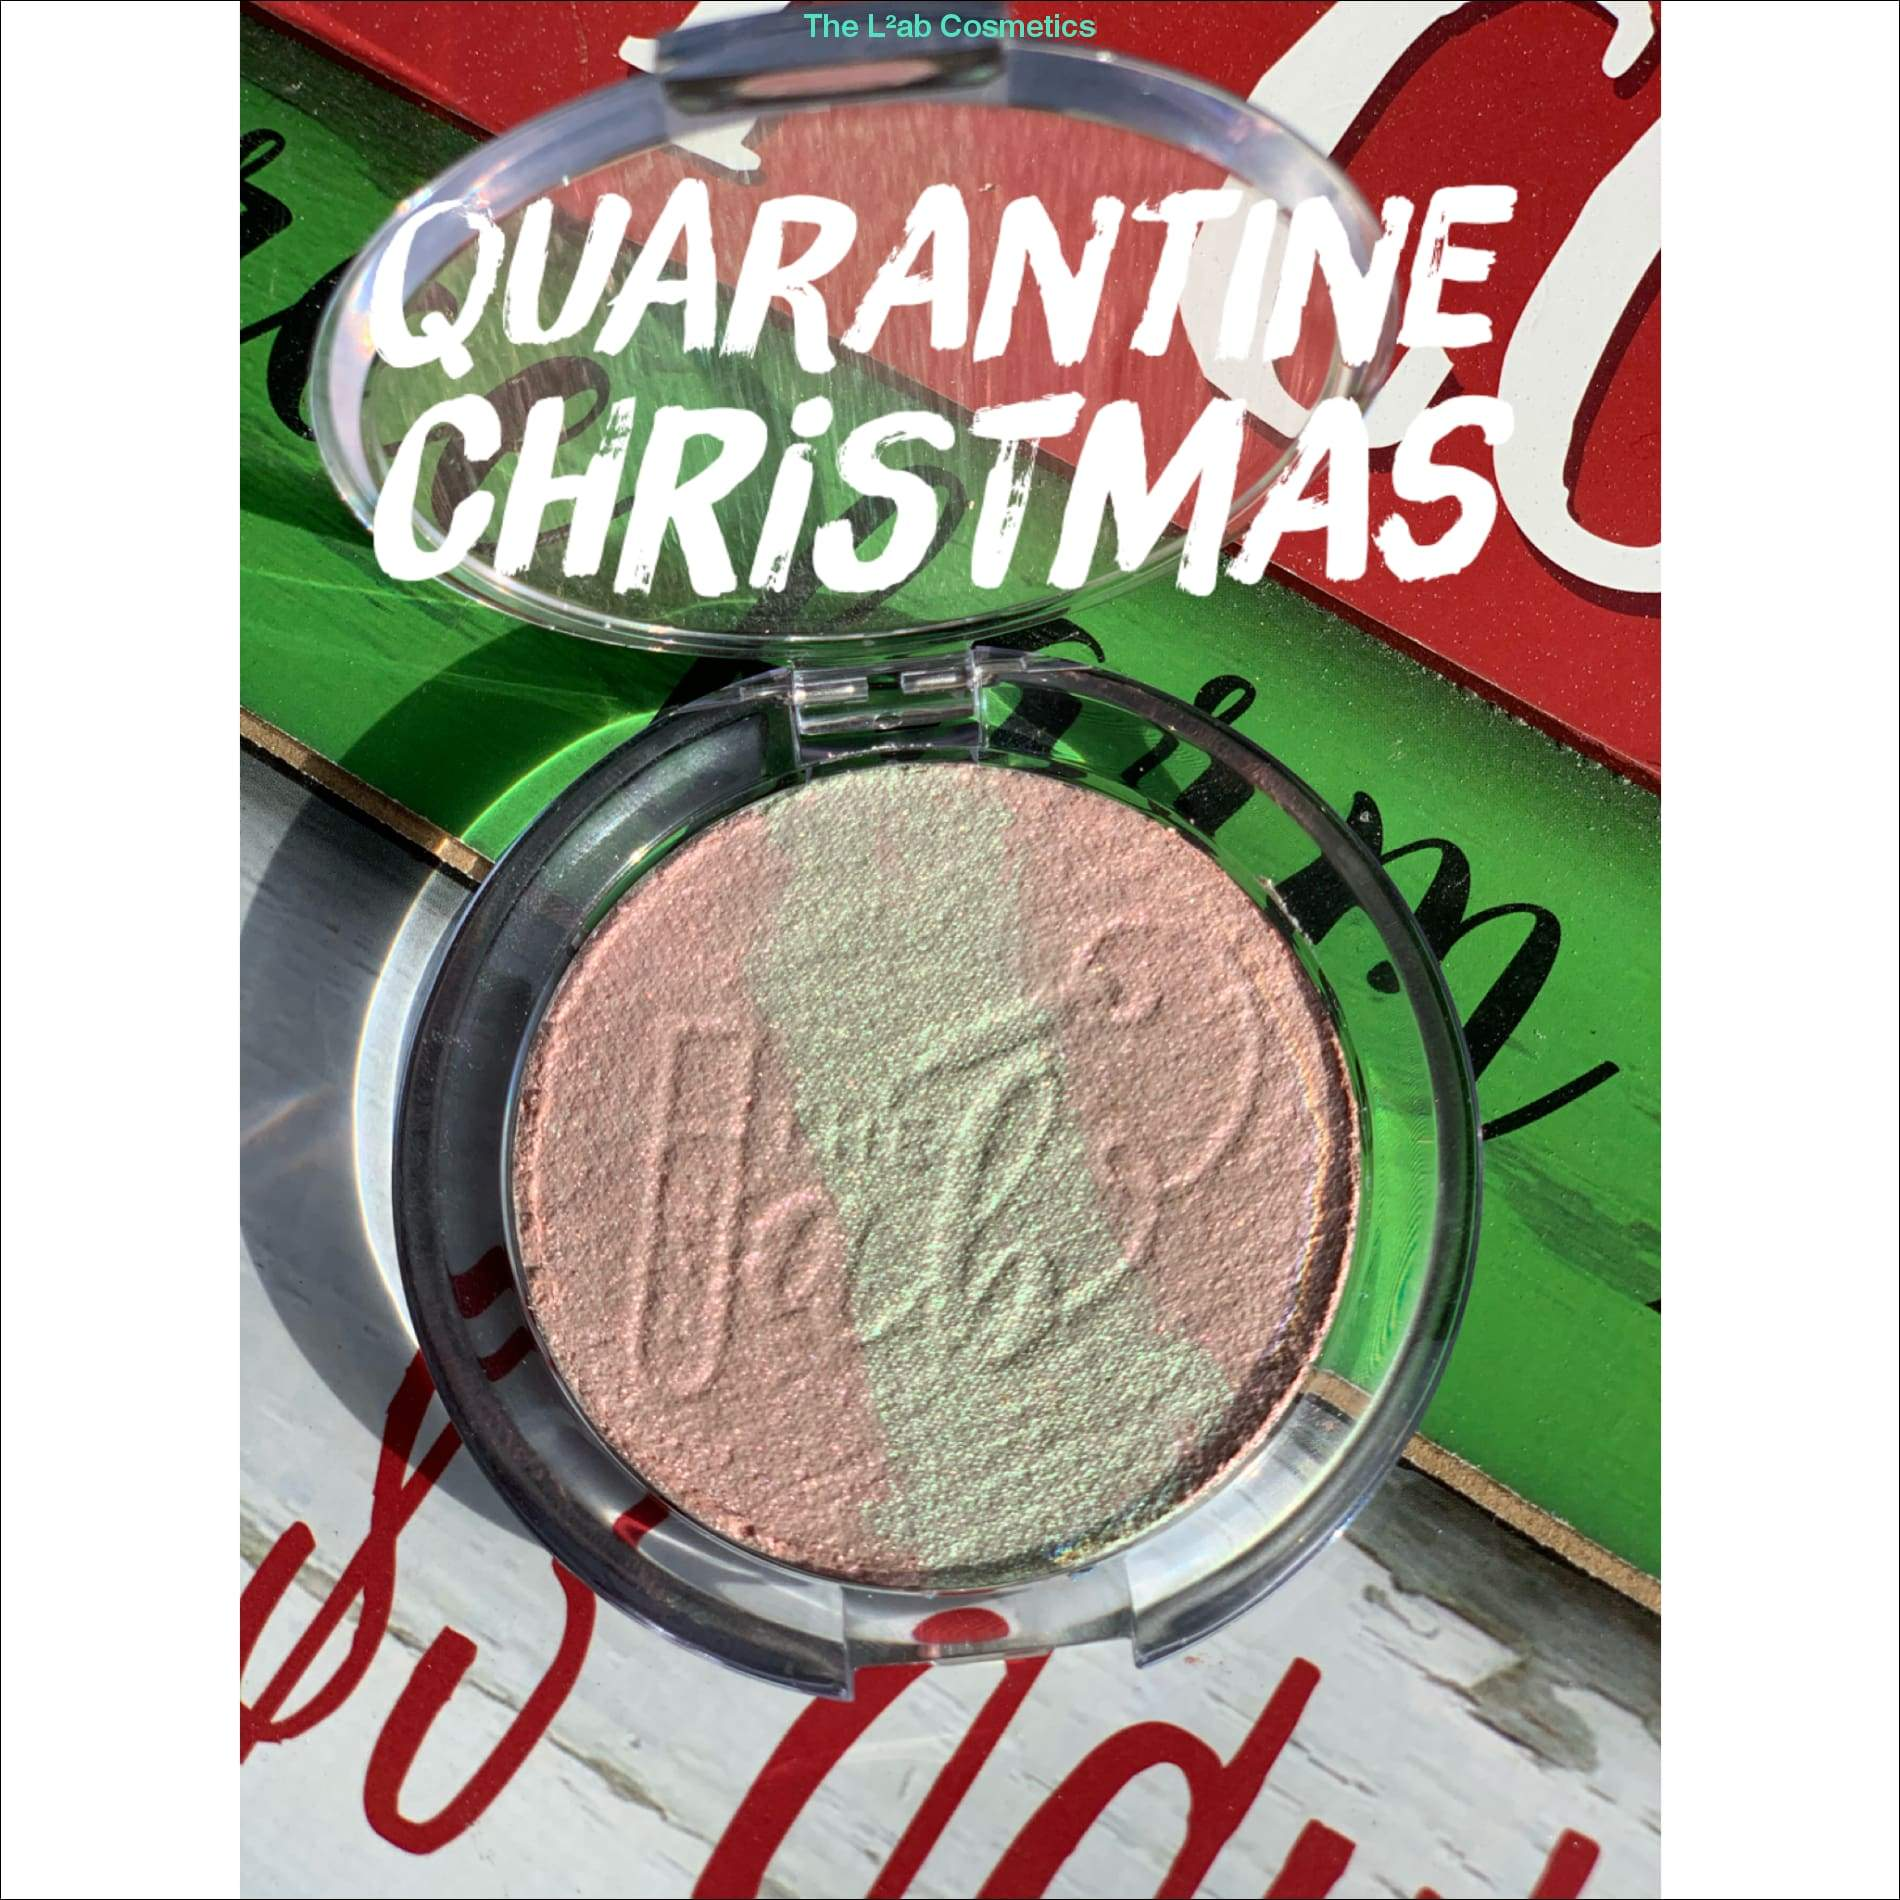 Quarantine Christmas highlighter - The-Lab-Cosmetics